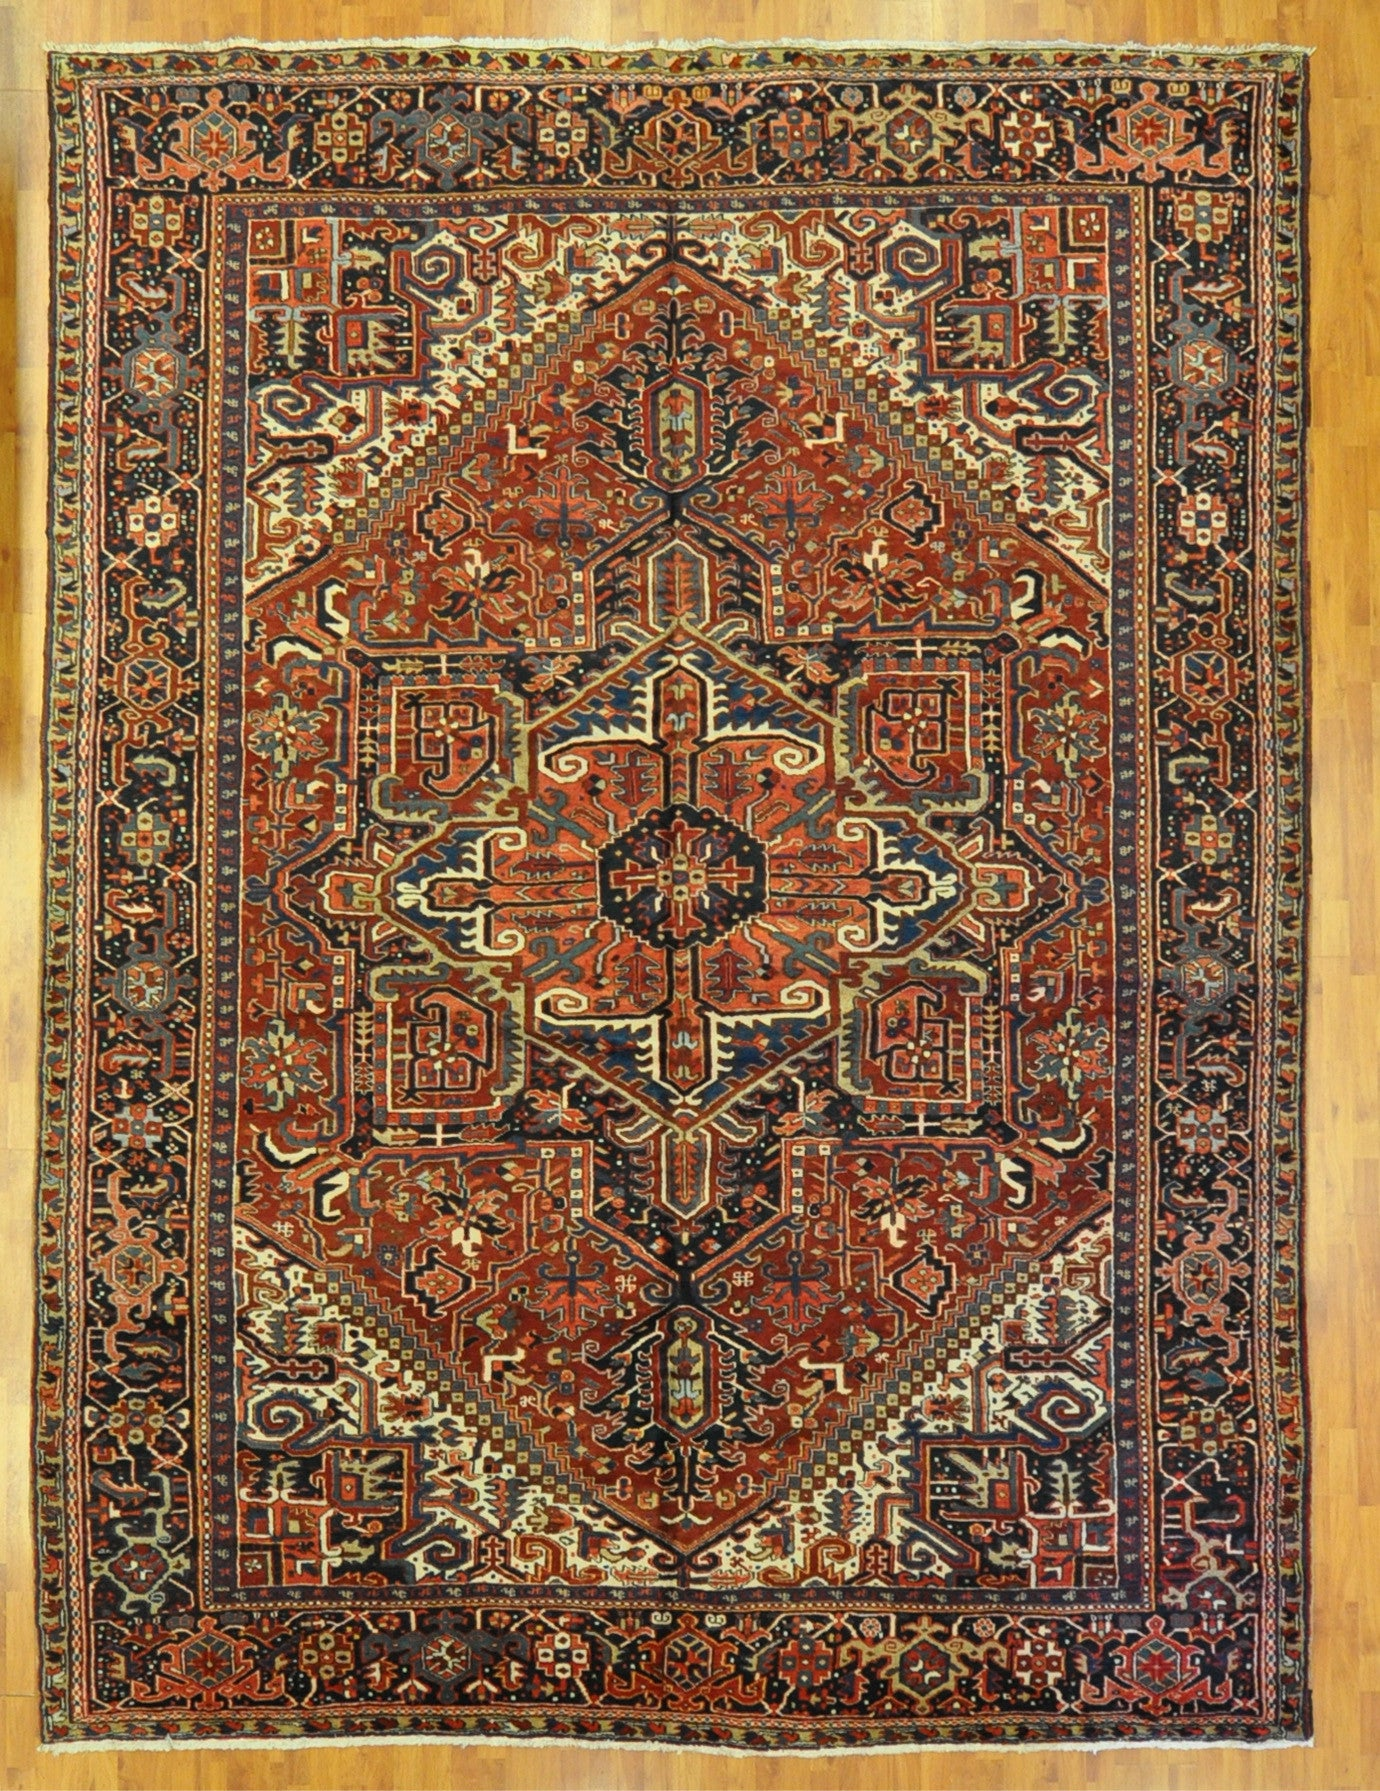 10.0x13.4 antique persian heriz #17223